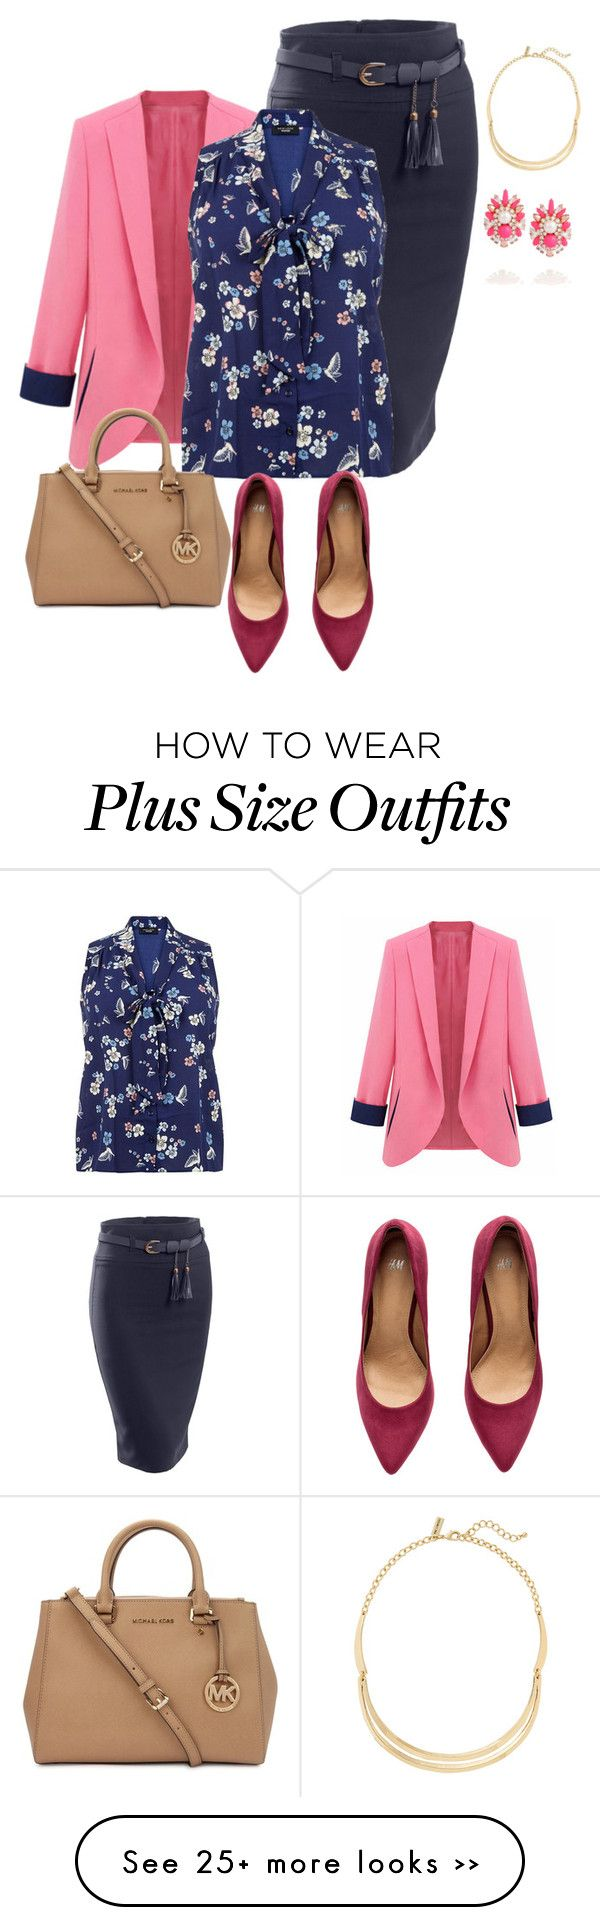 """plus size mixup office fab"" by kristie-payne on Polyvore featuring LE3NO, H&M, Michael Kors, SHOUROUK and The Limited"